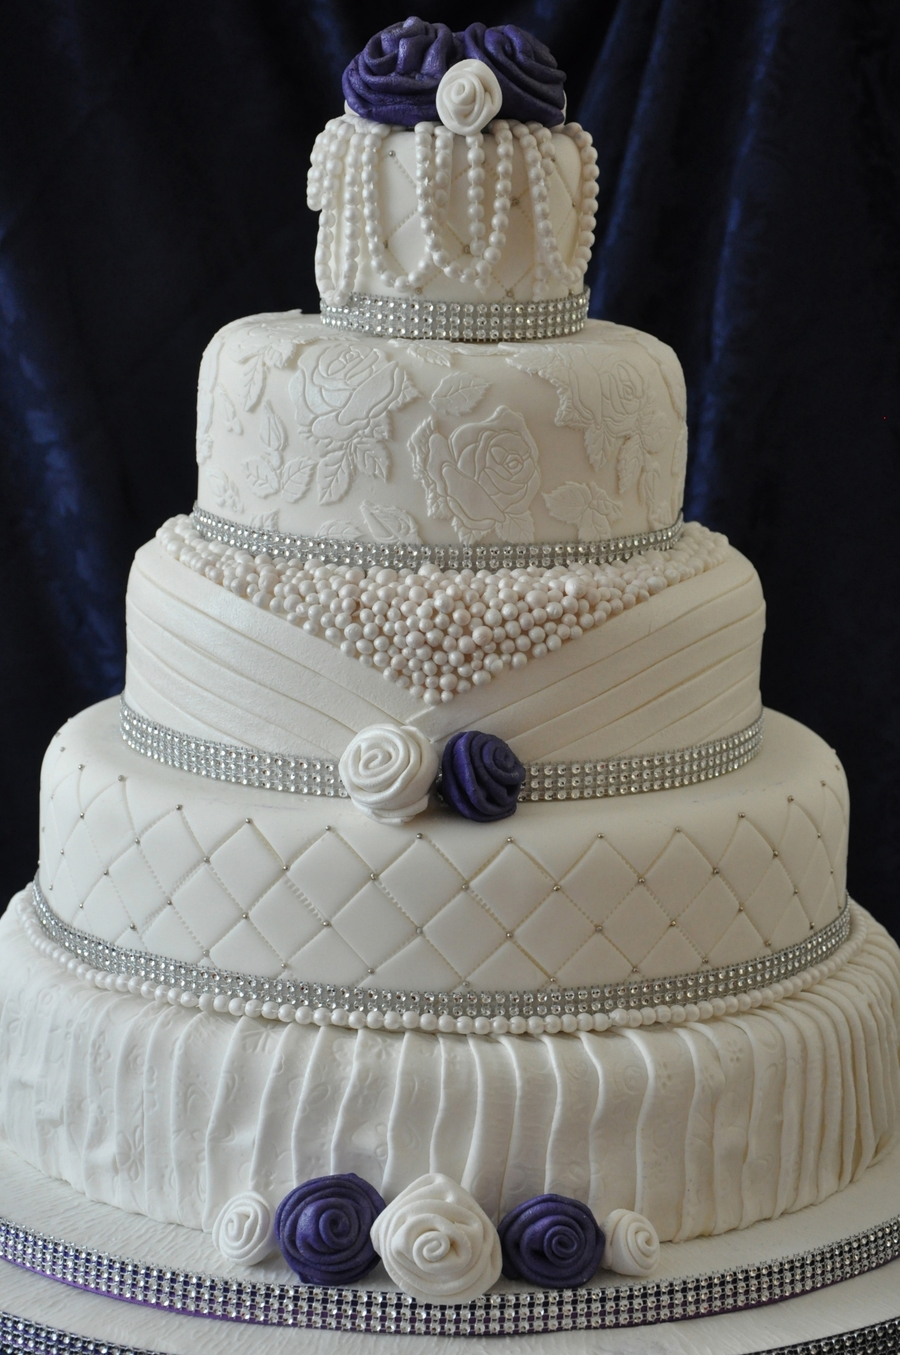 5 Tier Cake With Lace Effects Ribbon Roses And Pearls